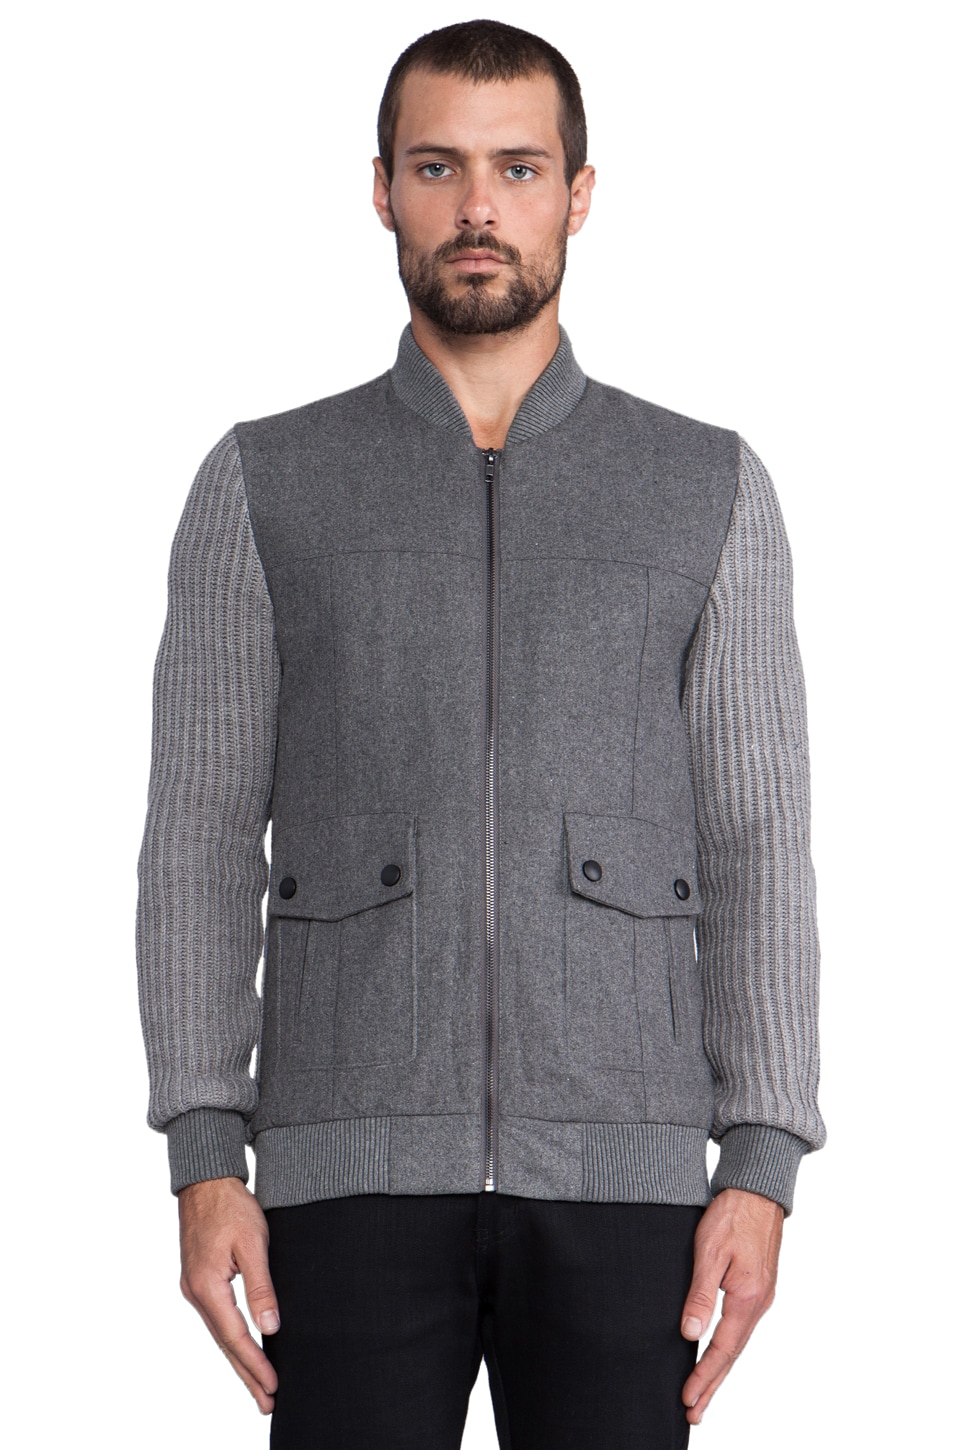 COMUNE Goodwin Bomber Jacket with Knit Sleeves in Charcoal